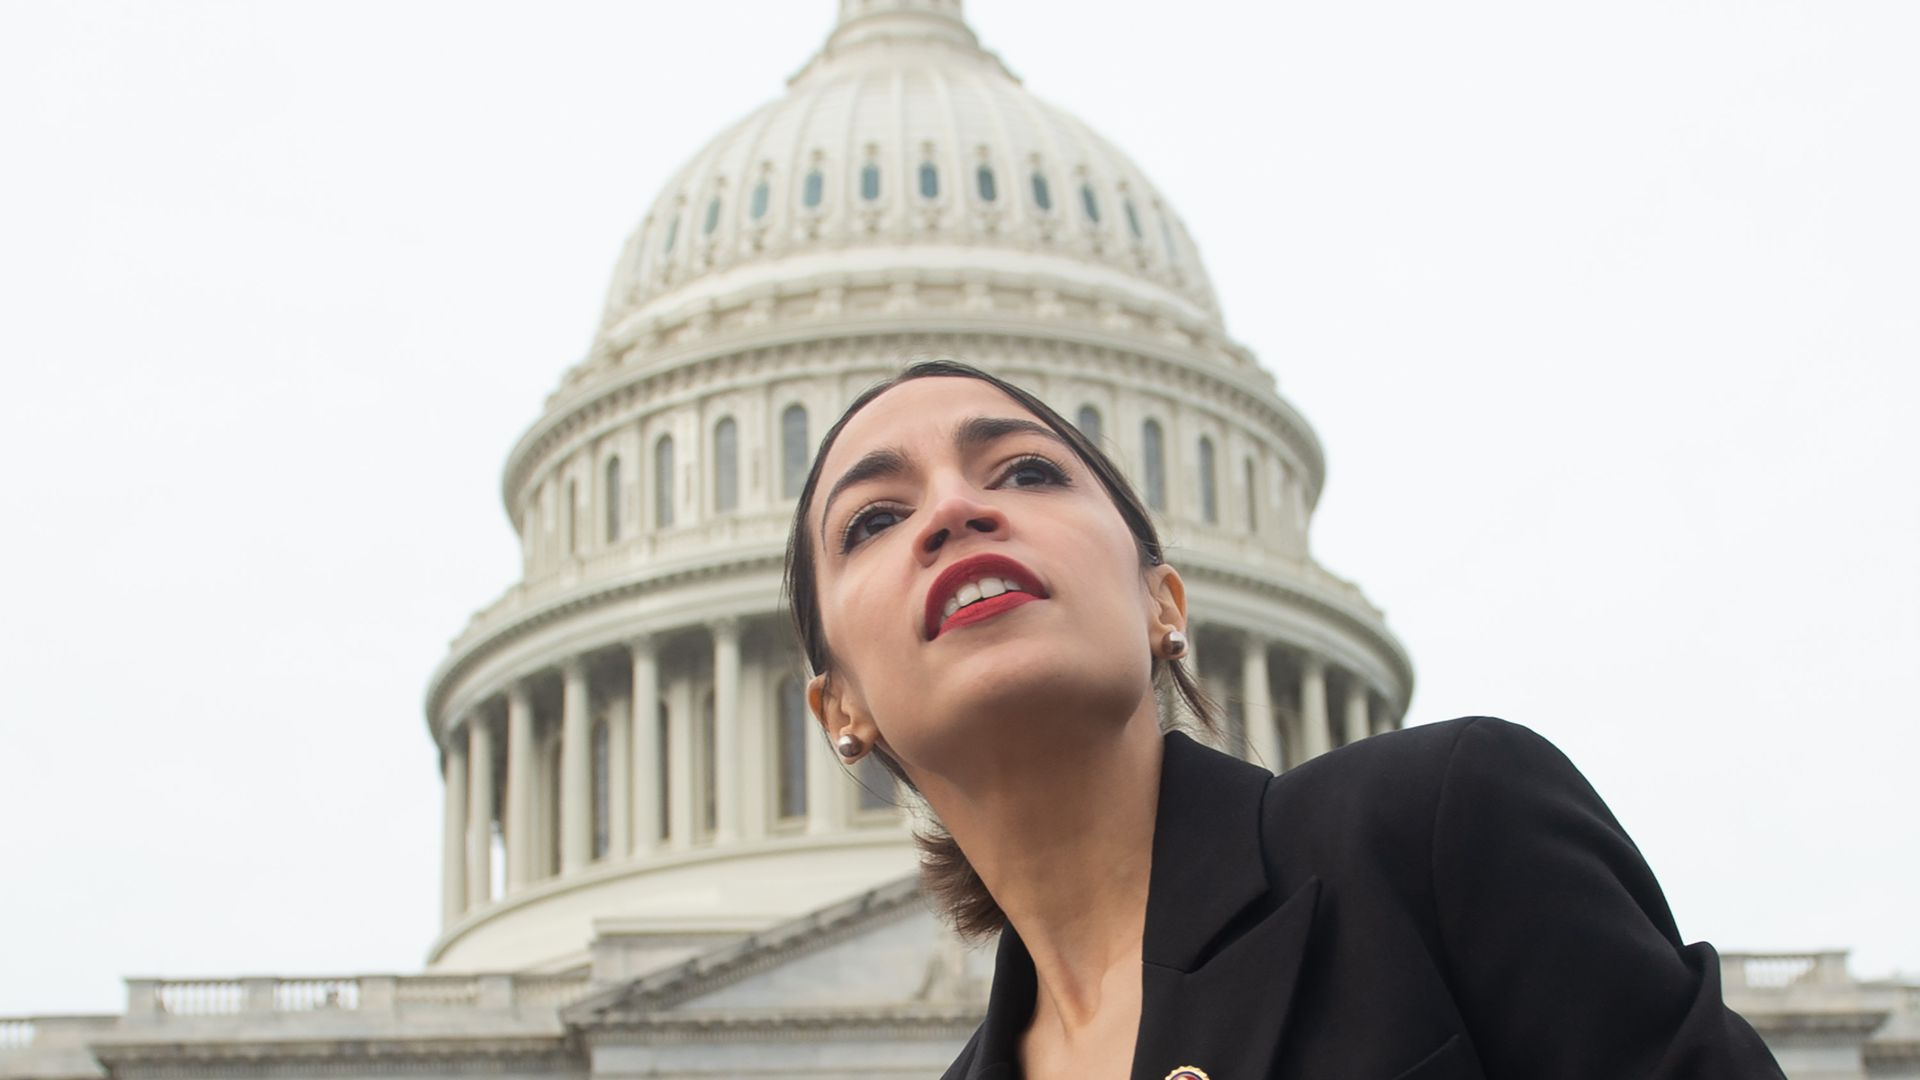 US Representative Alexandria Ocasio-Cortez, Democrat of New York, outside the US Capitol in Washington, DC, January 4.